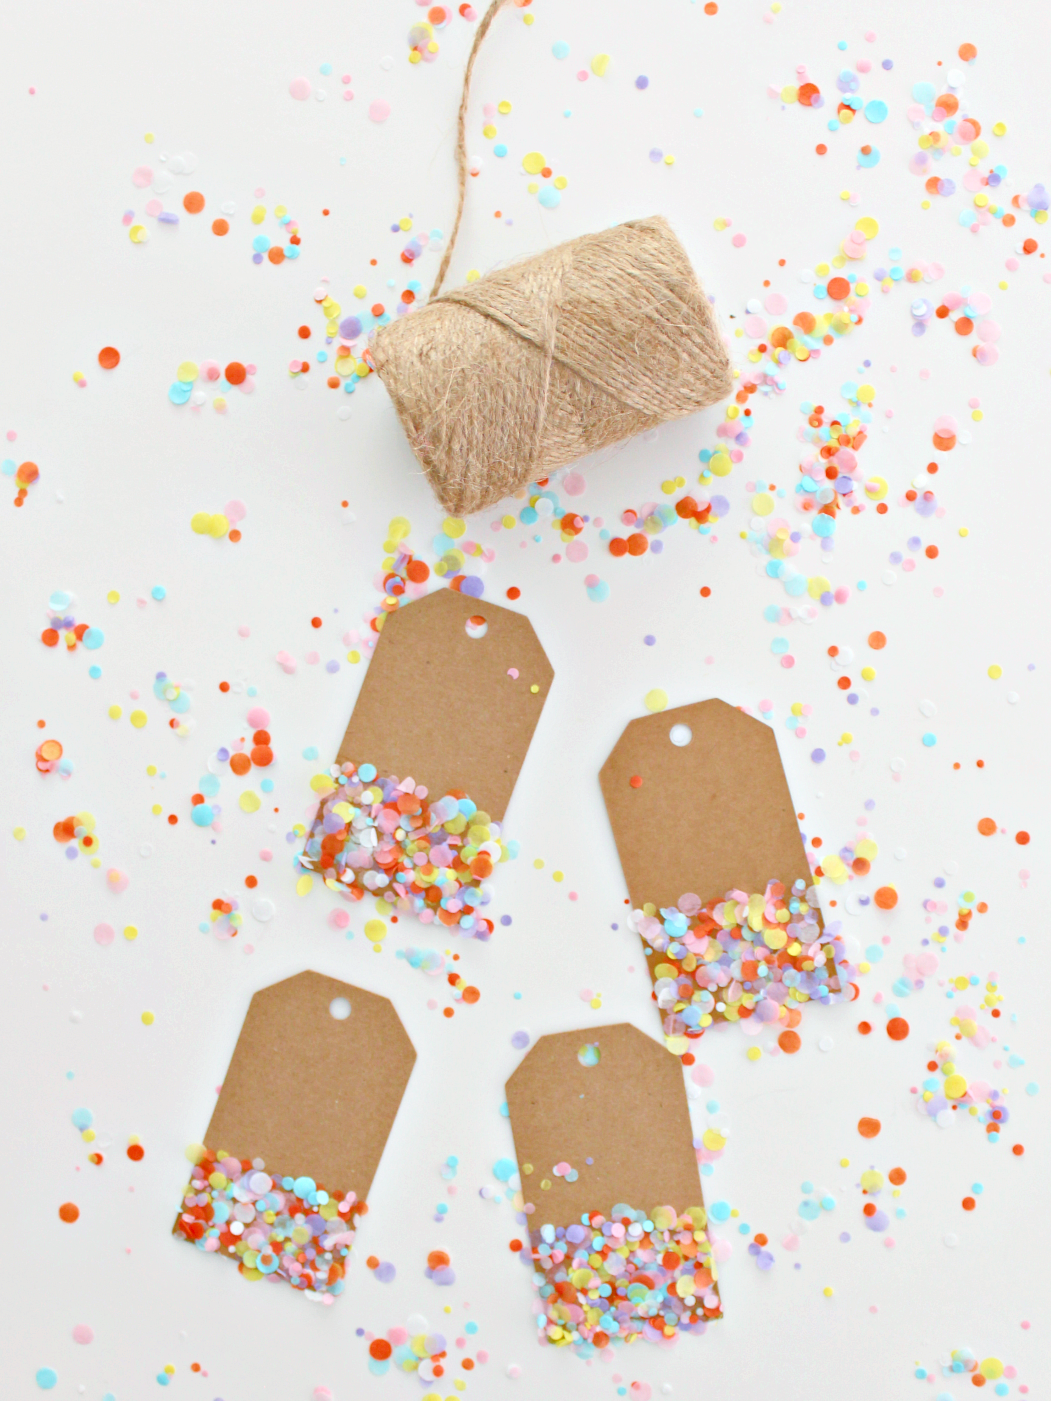 Birthdays in my family are already upon us, and I thought for a fun, colourful craft, why not make confetti tags!To make them, I usedtissue paper from a